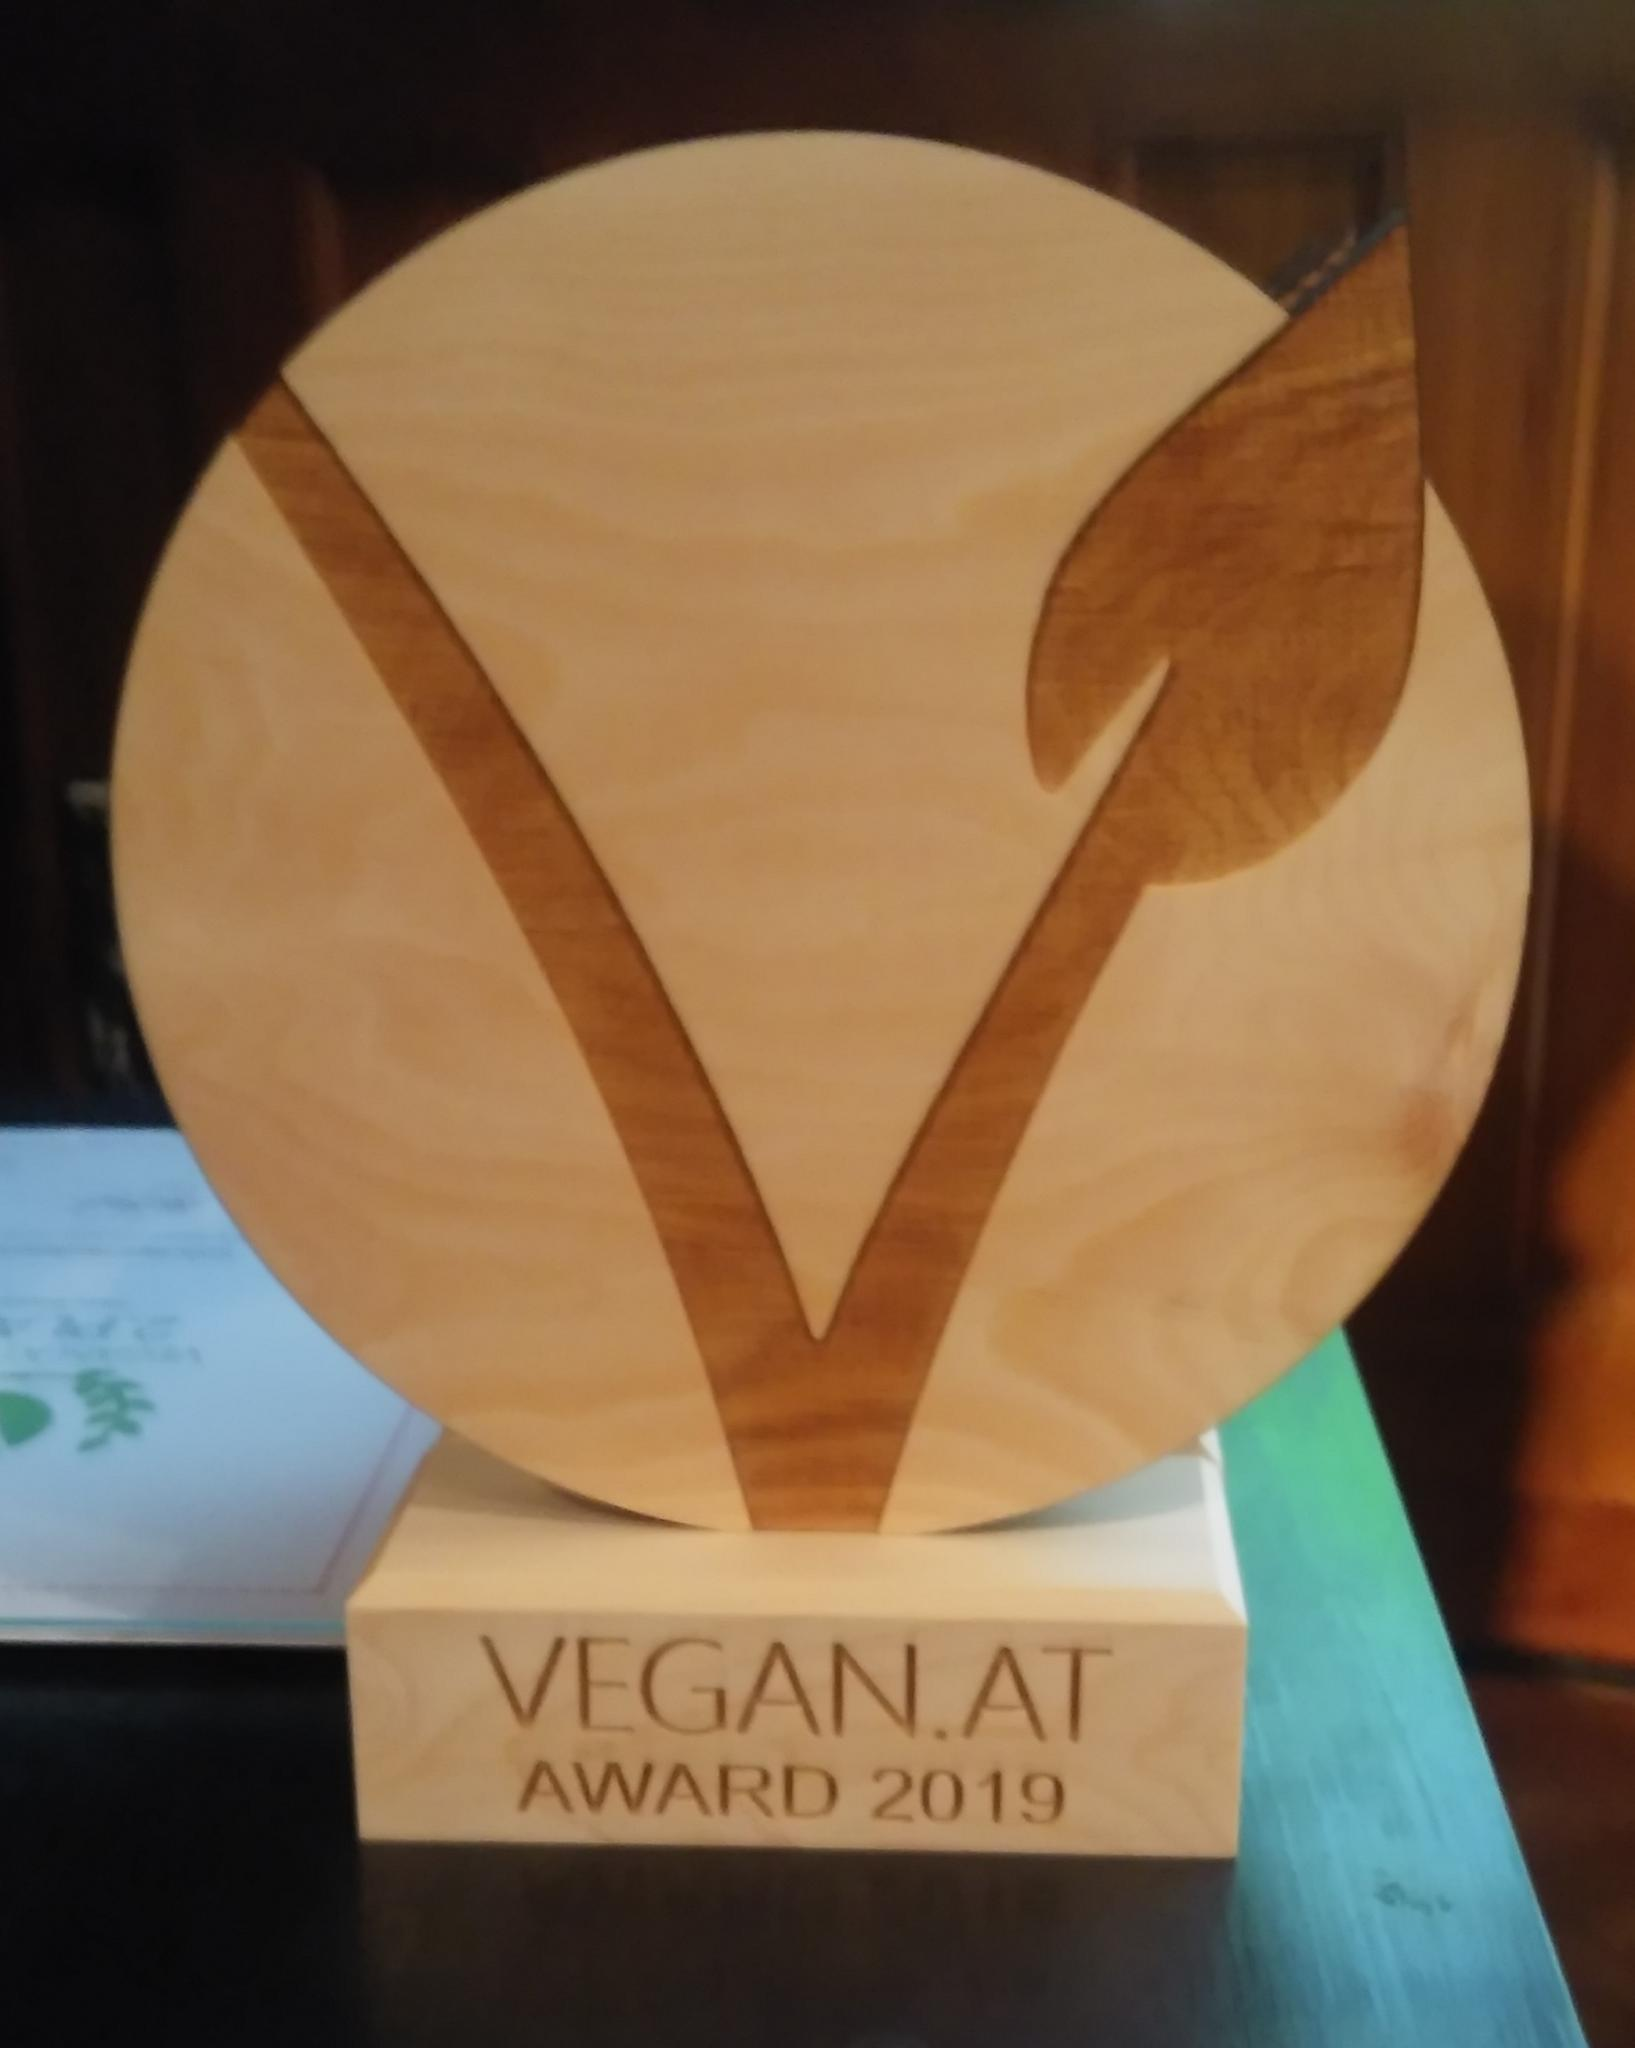 Vegan Award 2019